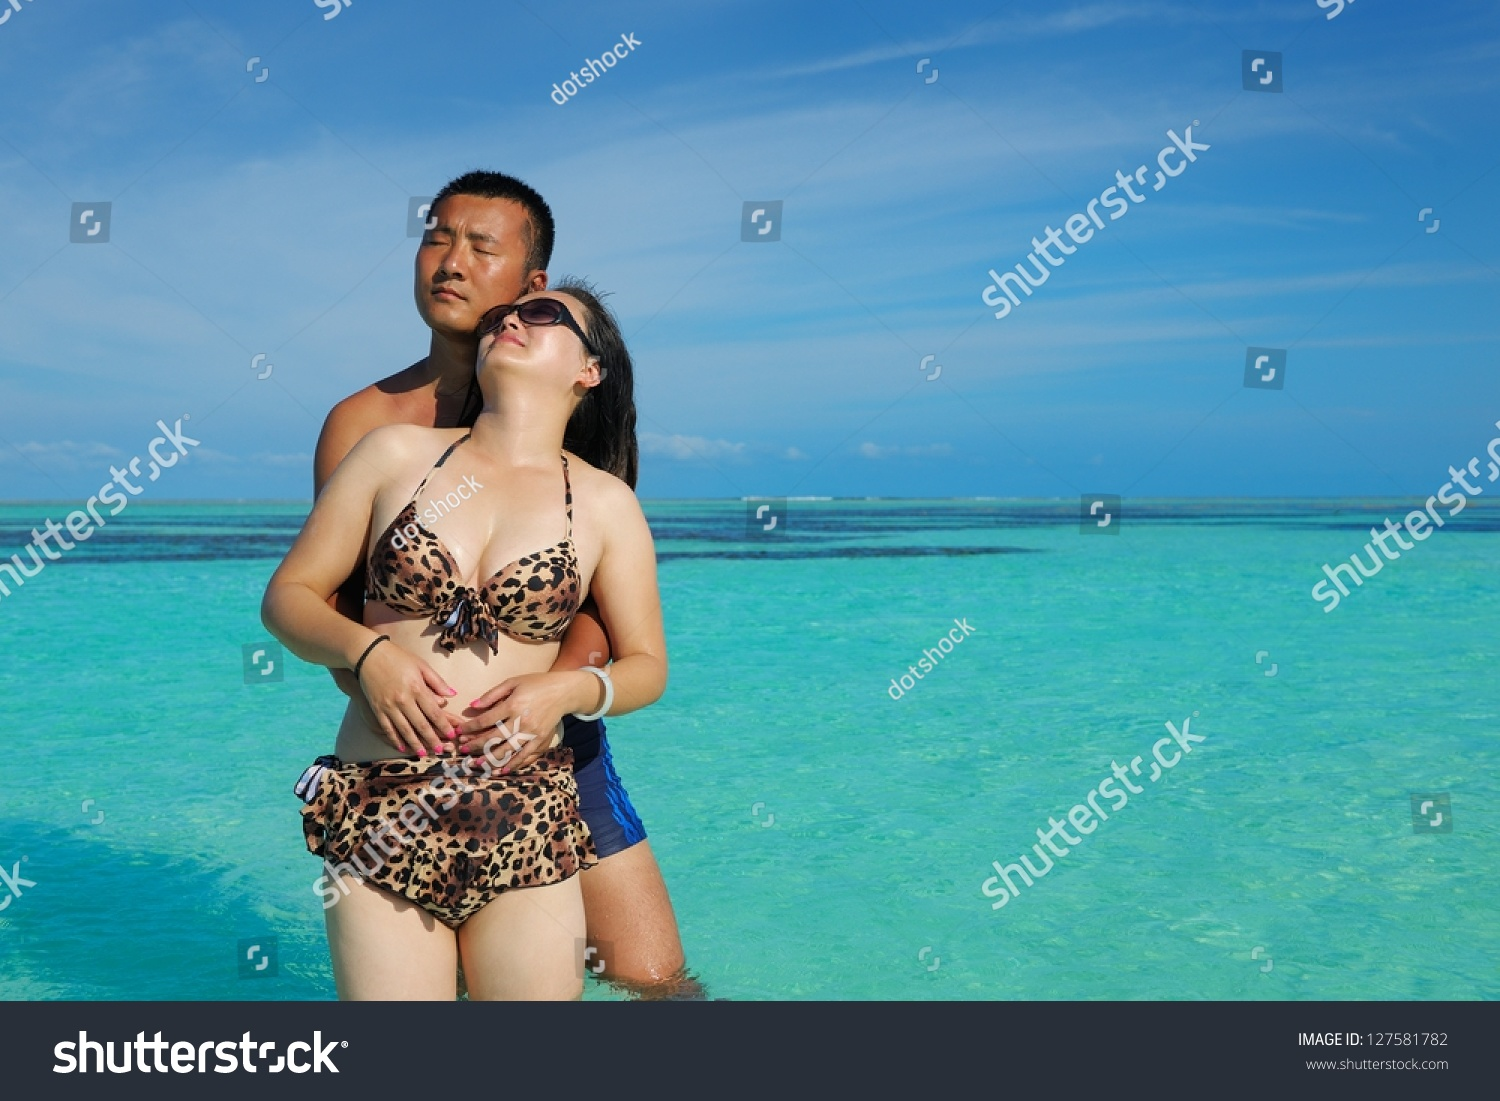 stock photo young couple dating asian enjoying conversation image